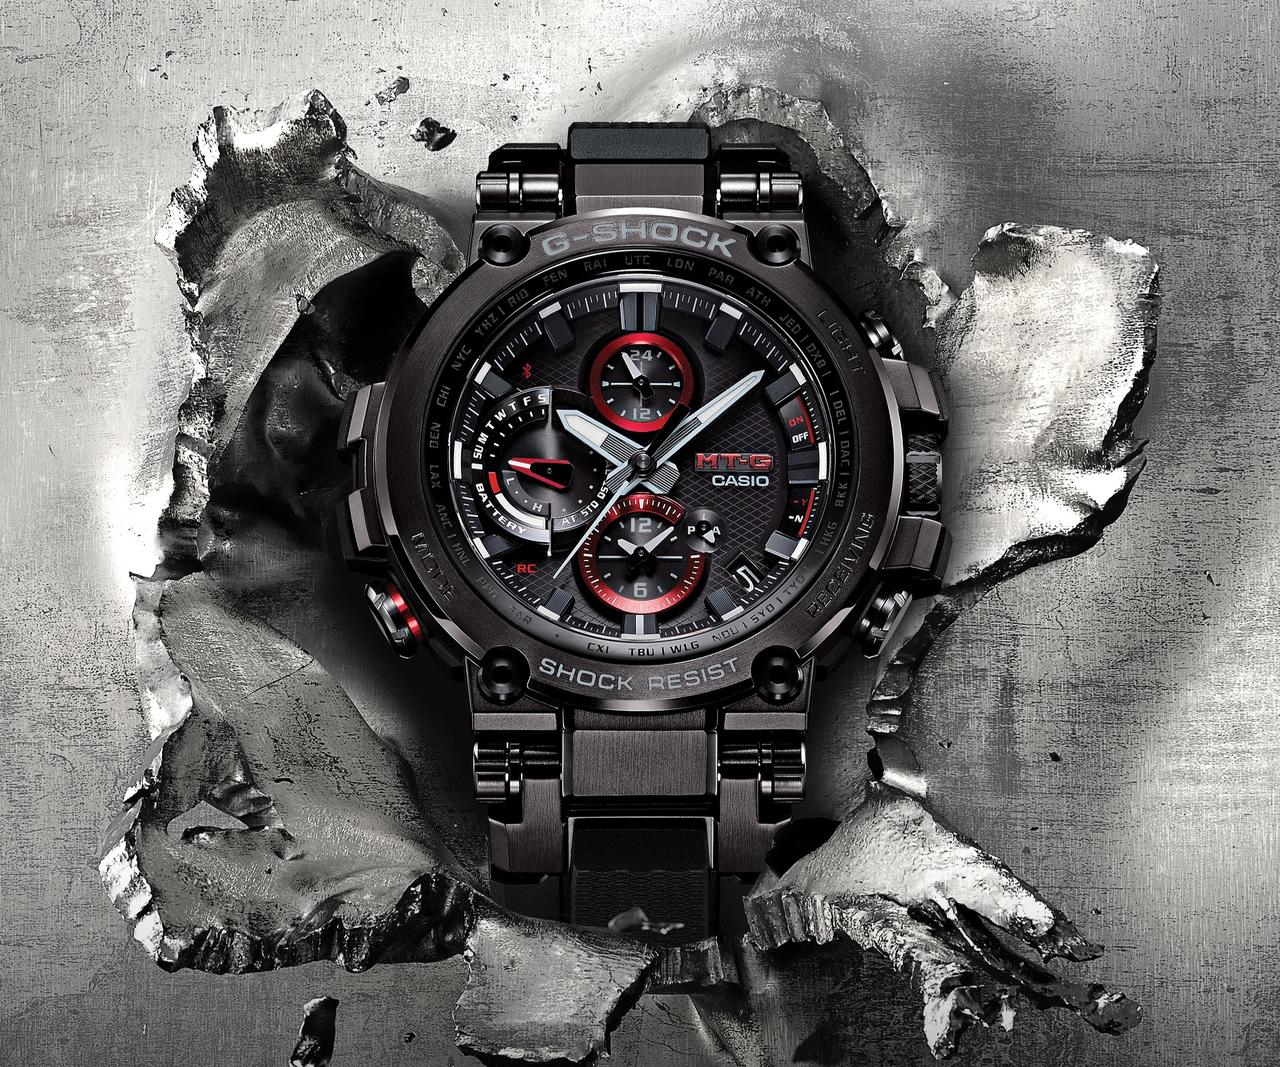 A Tough, Refined & Connected G-SHOCK